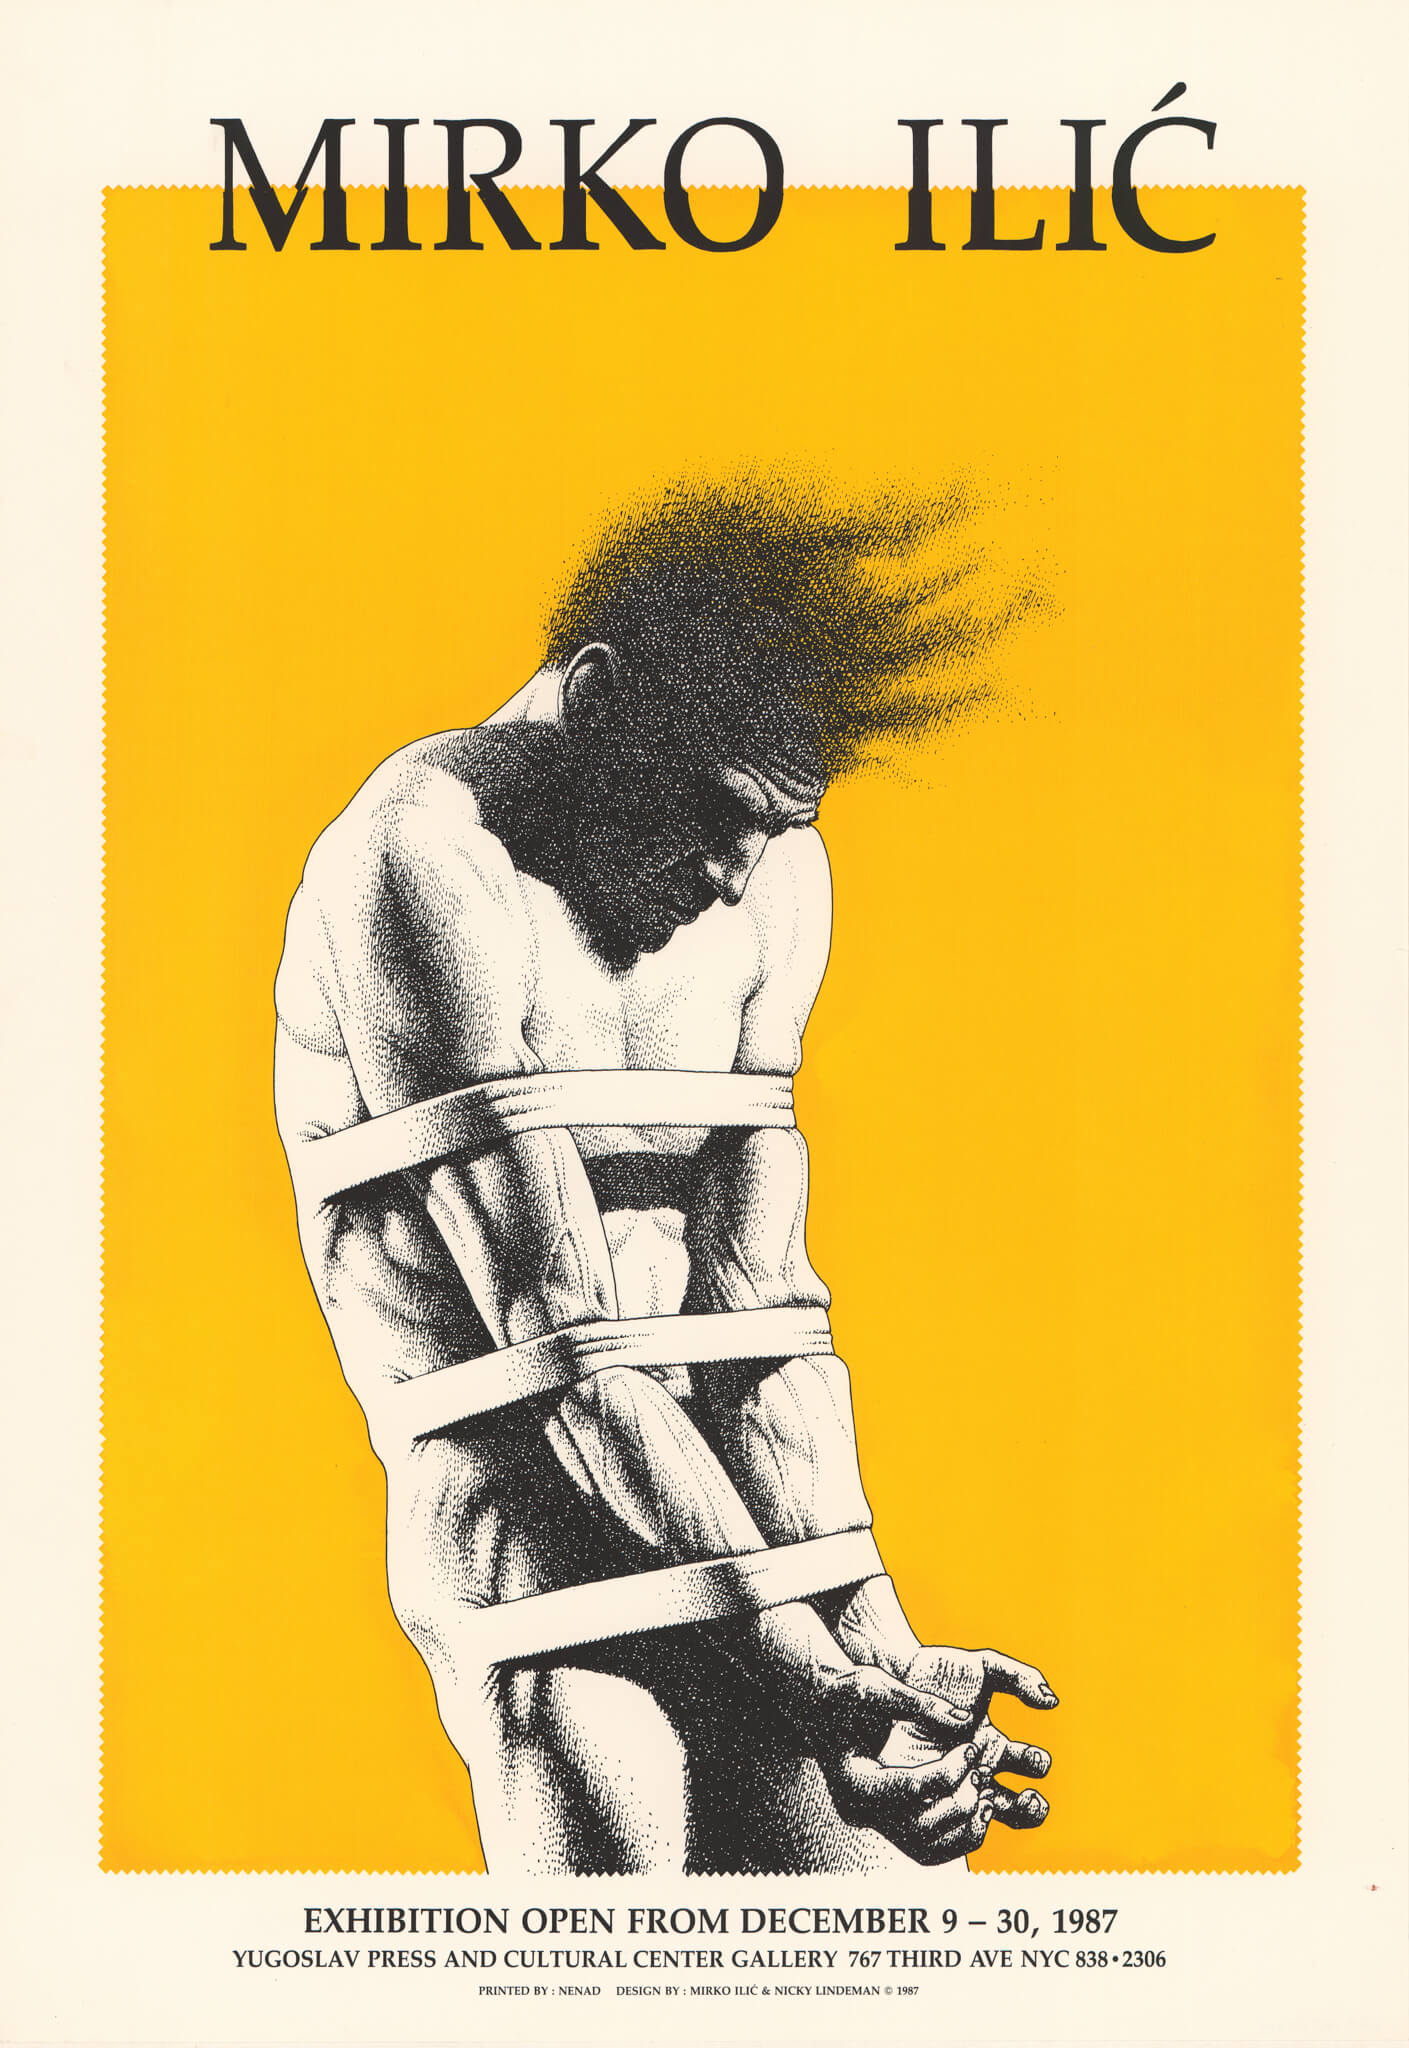 """Mirko Ilić"" (1987; Mirko Ilić, Nicky Lindeman), a poster for the 1987 Ilić's exhibition at the Yugoslav Press and Cultural Center Gallery in New York."